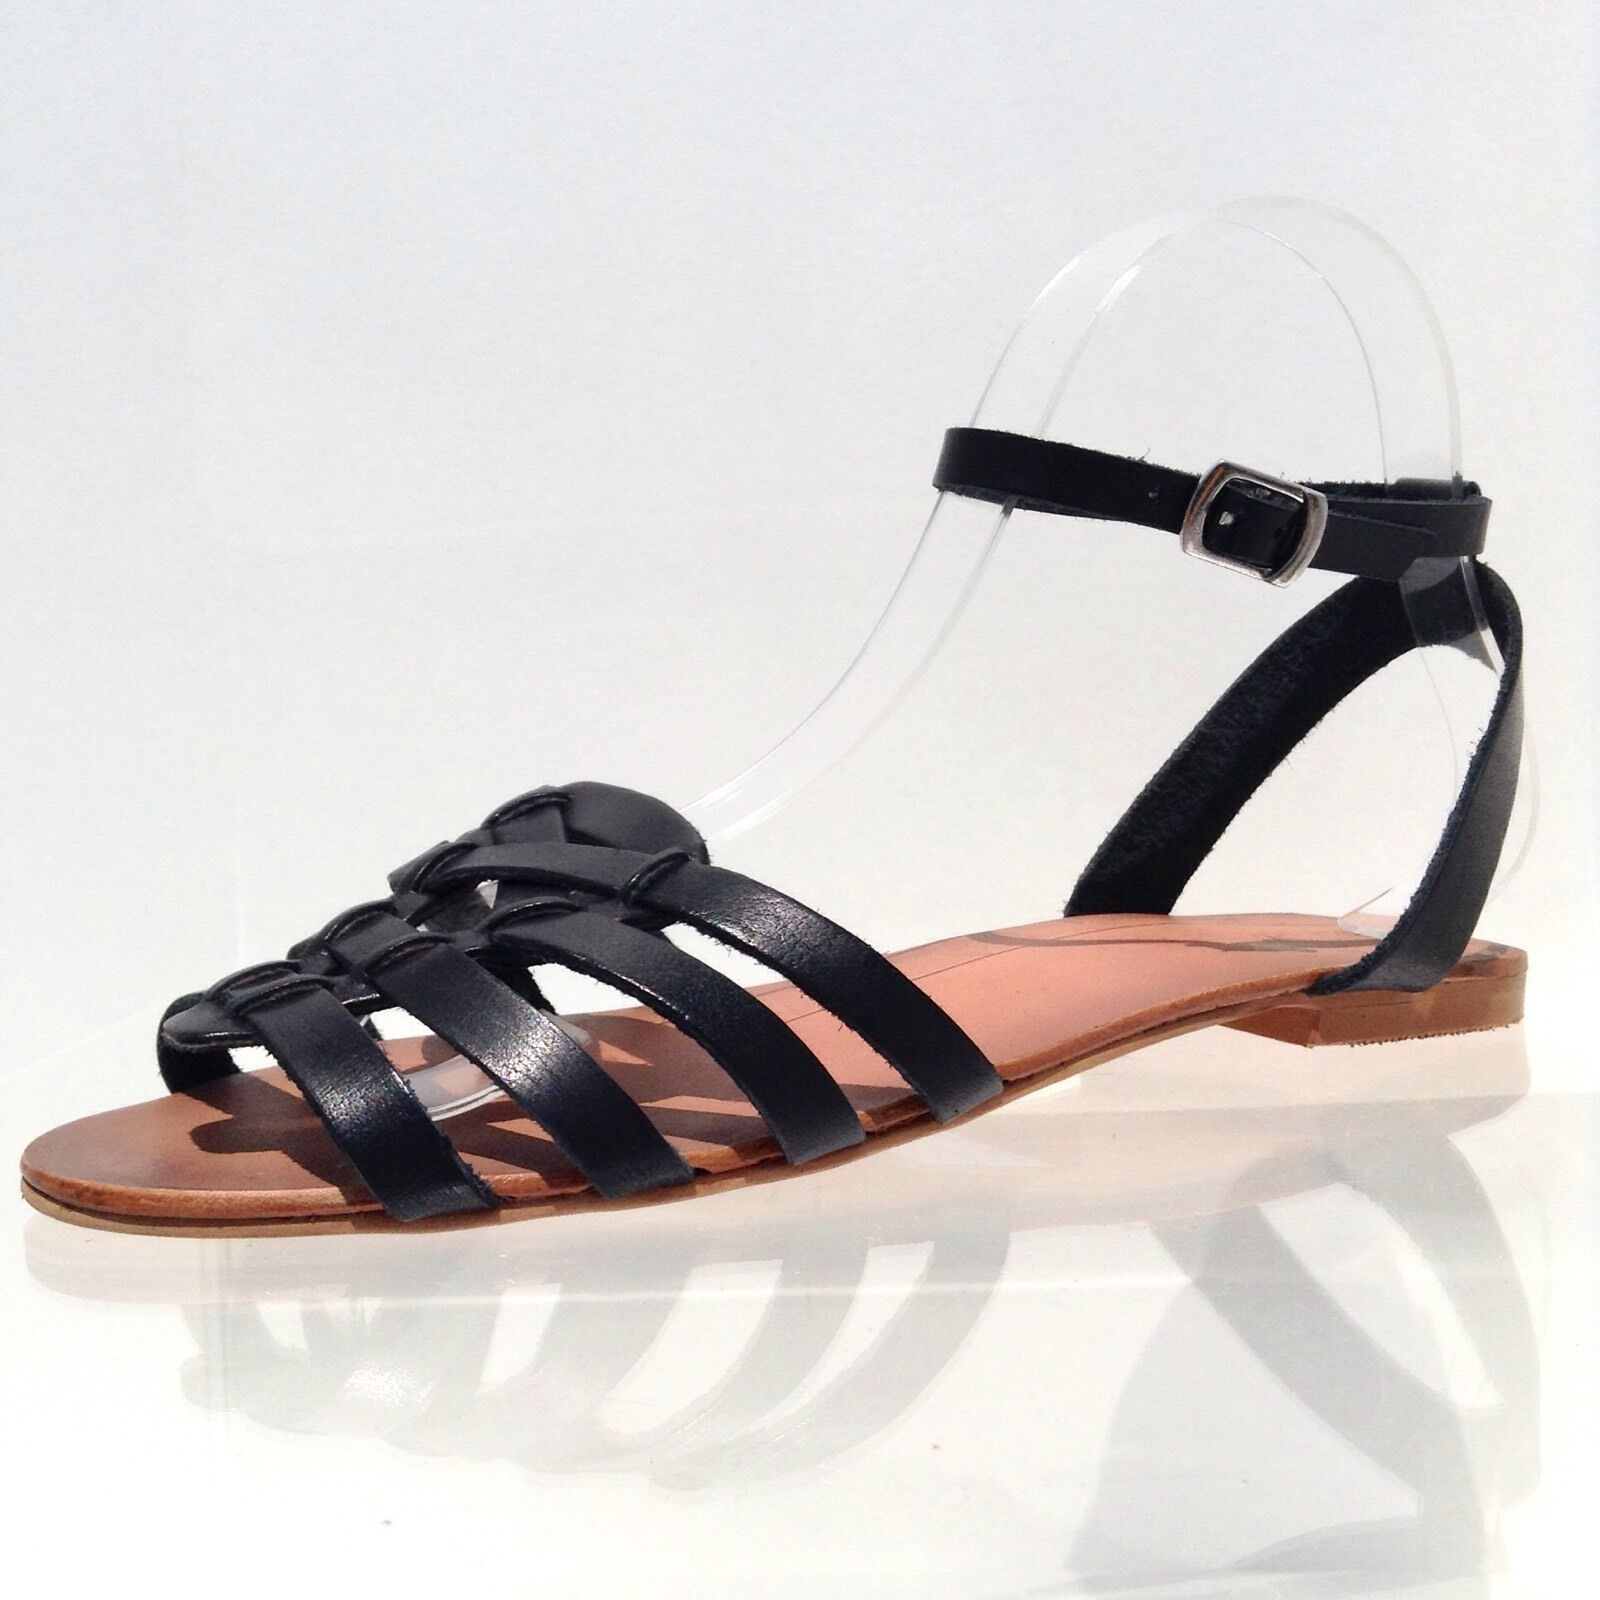 Women's Sole Round Society Rissy Black Leather Round Sole Toe Strappy Flats Size 7 M NEW 5abcab